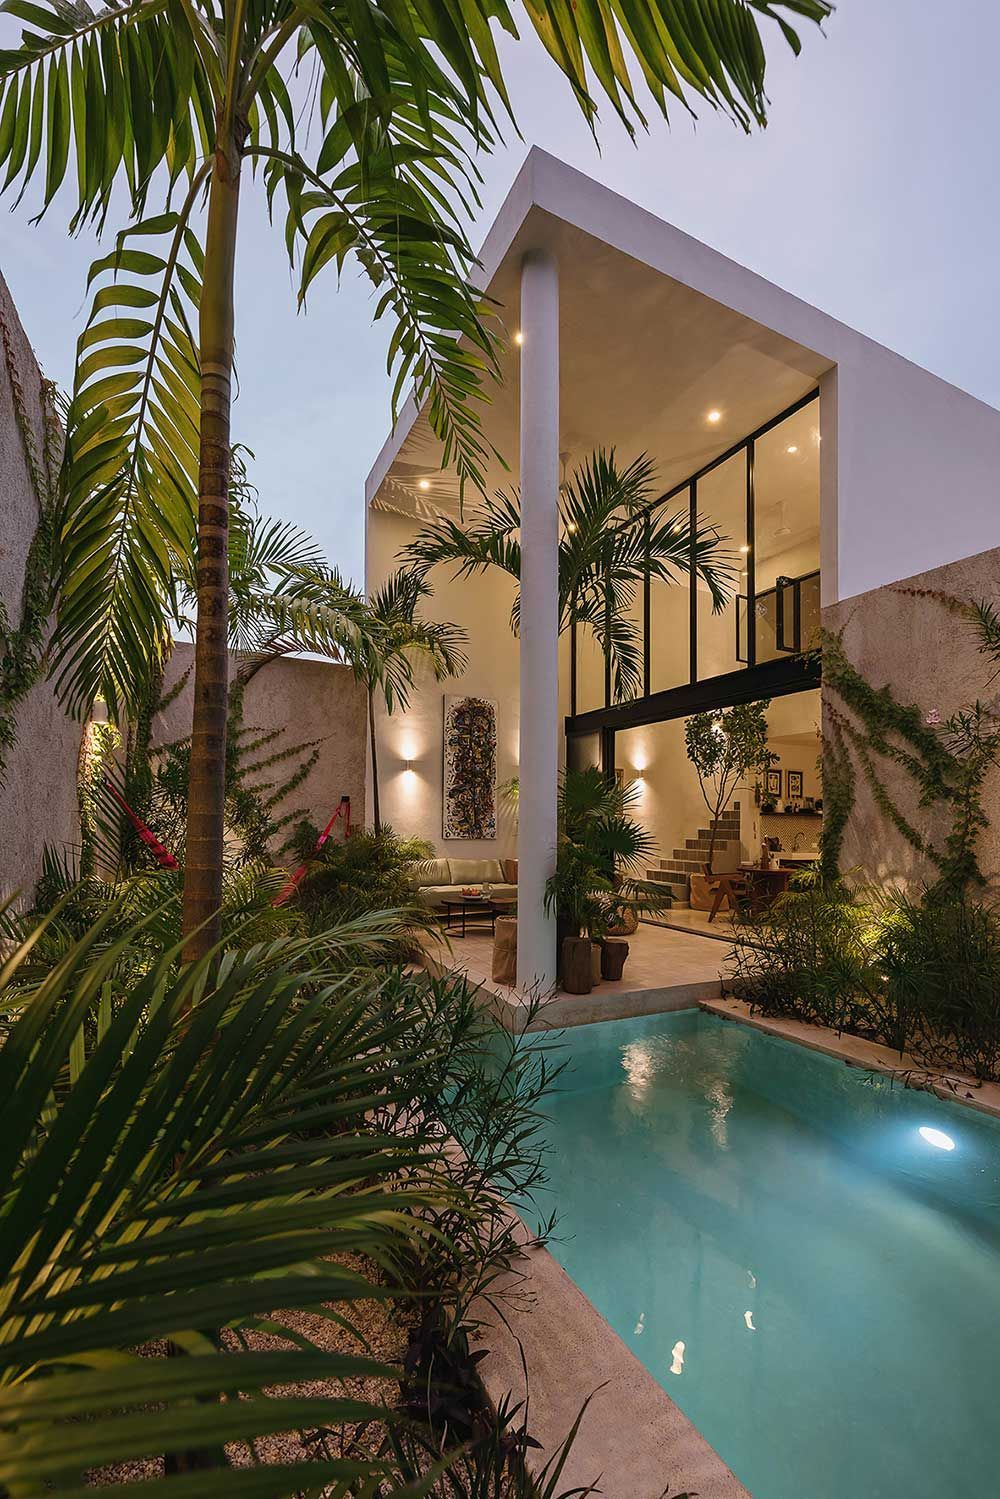 Casa Hannah In The Yucatan Plays With Double Heights To Feel Larger Vacation Home House Estate Homes